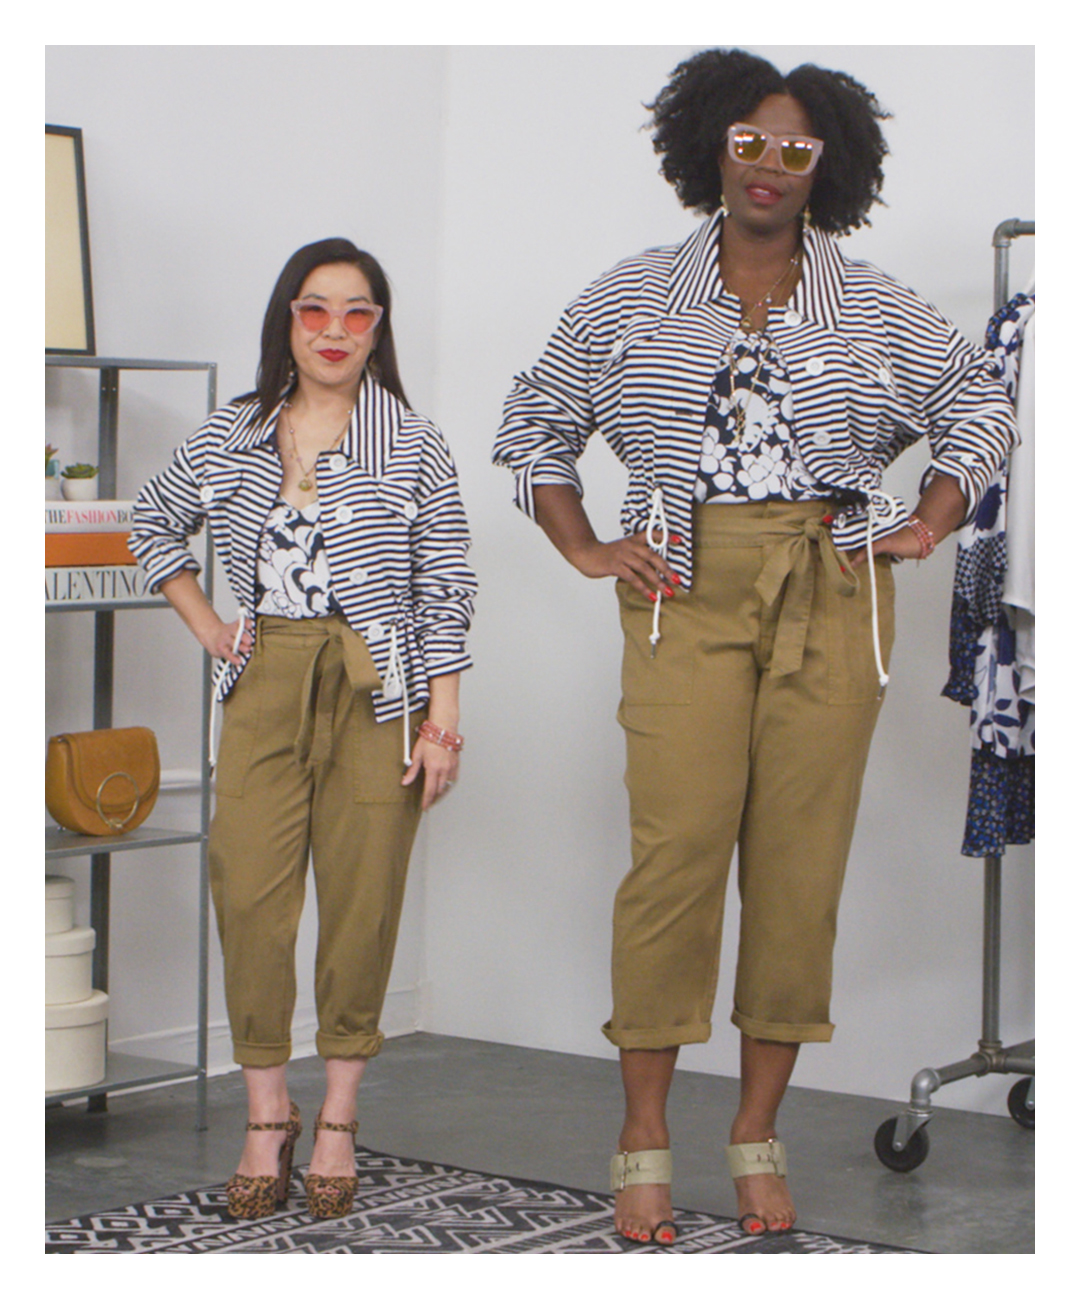 cabi Clothing | Styling Tips for Tall or Petite Women